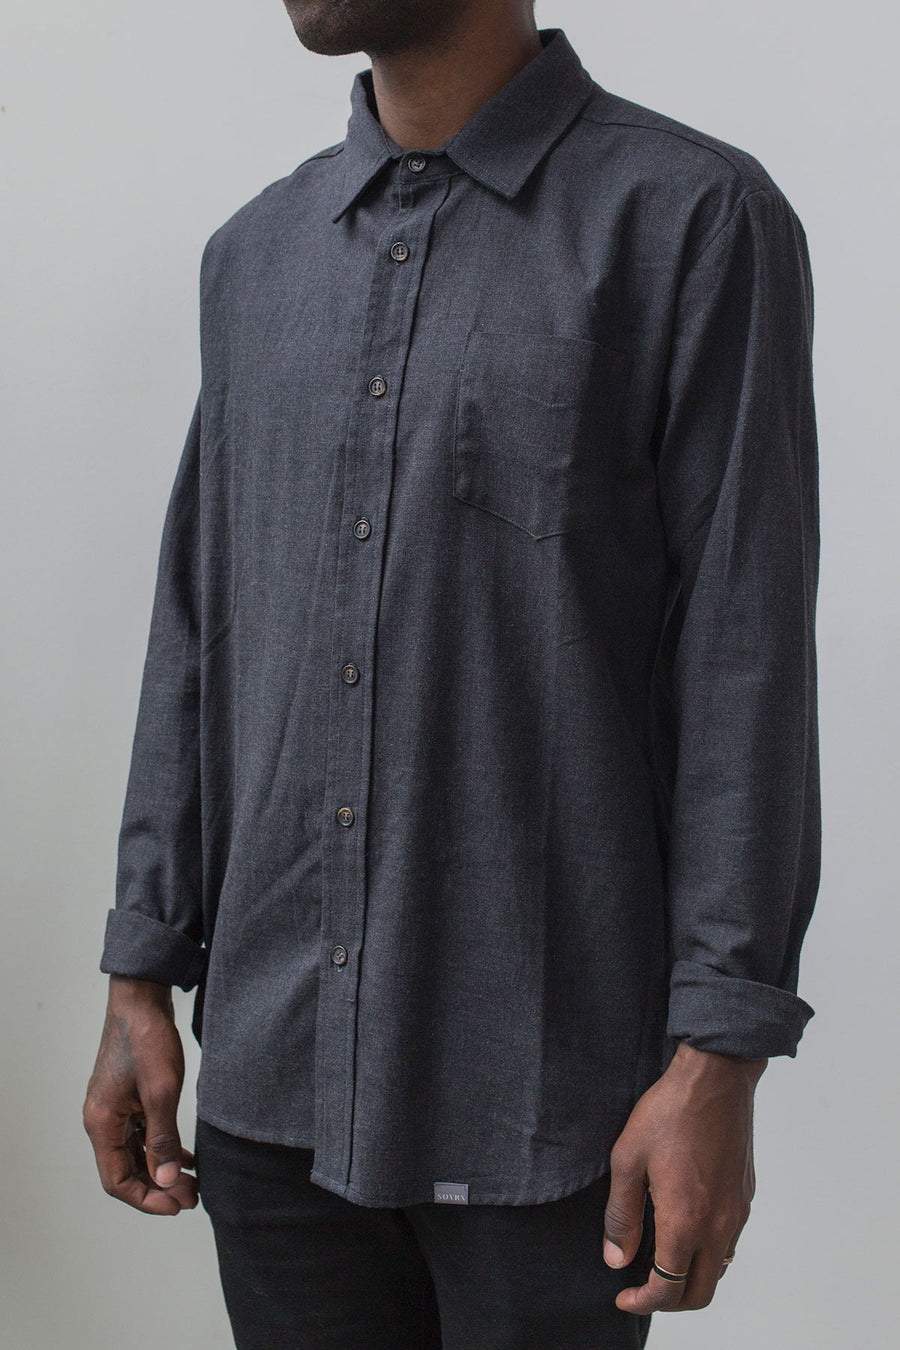 Bann | Button Up - SOVRN